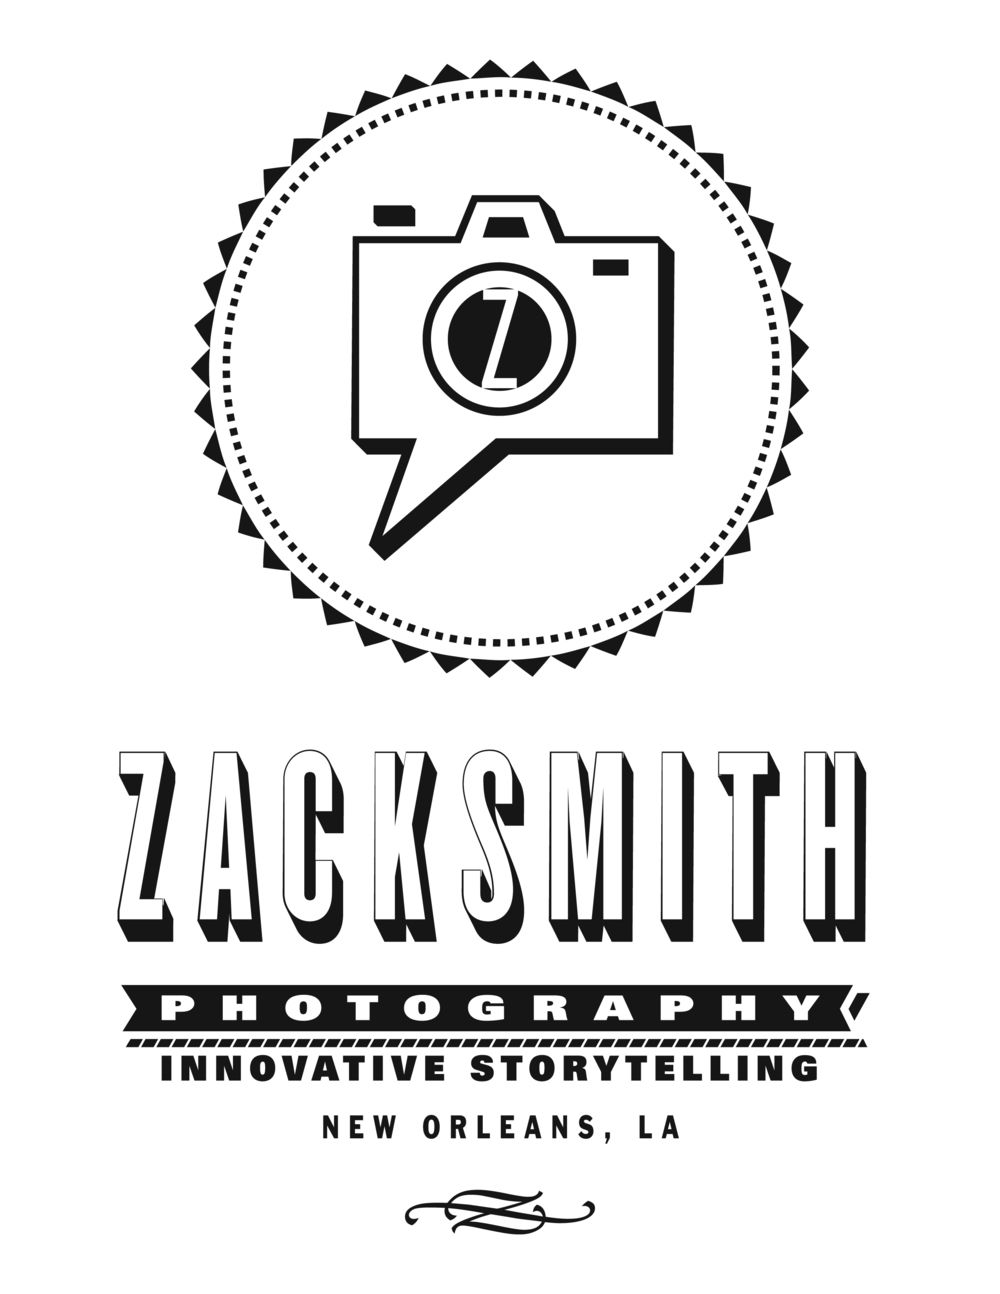 Zack Smith Photography Blog / Home of 'How To Tuesday' where you'll get  photography Techniques and Tips. Read about my photo shoots in the New  Orleans area and beyond. Blogging 10+ years strong on life as a visual  storyteller, collaborator, and always Shooting for the Wall.